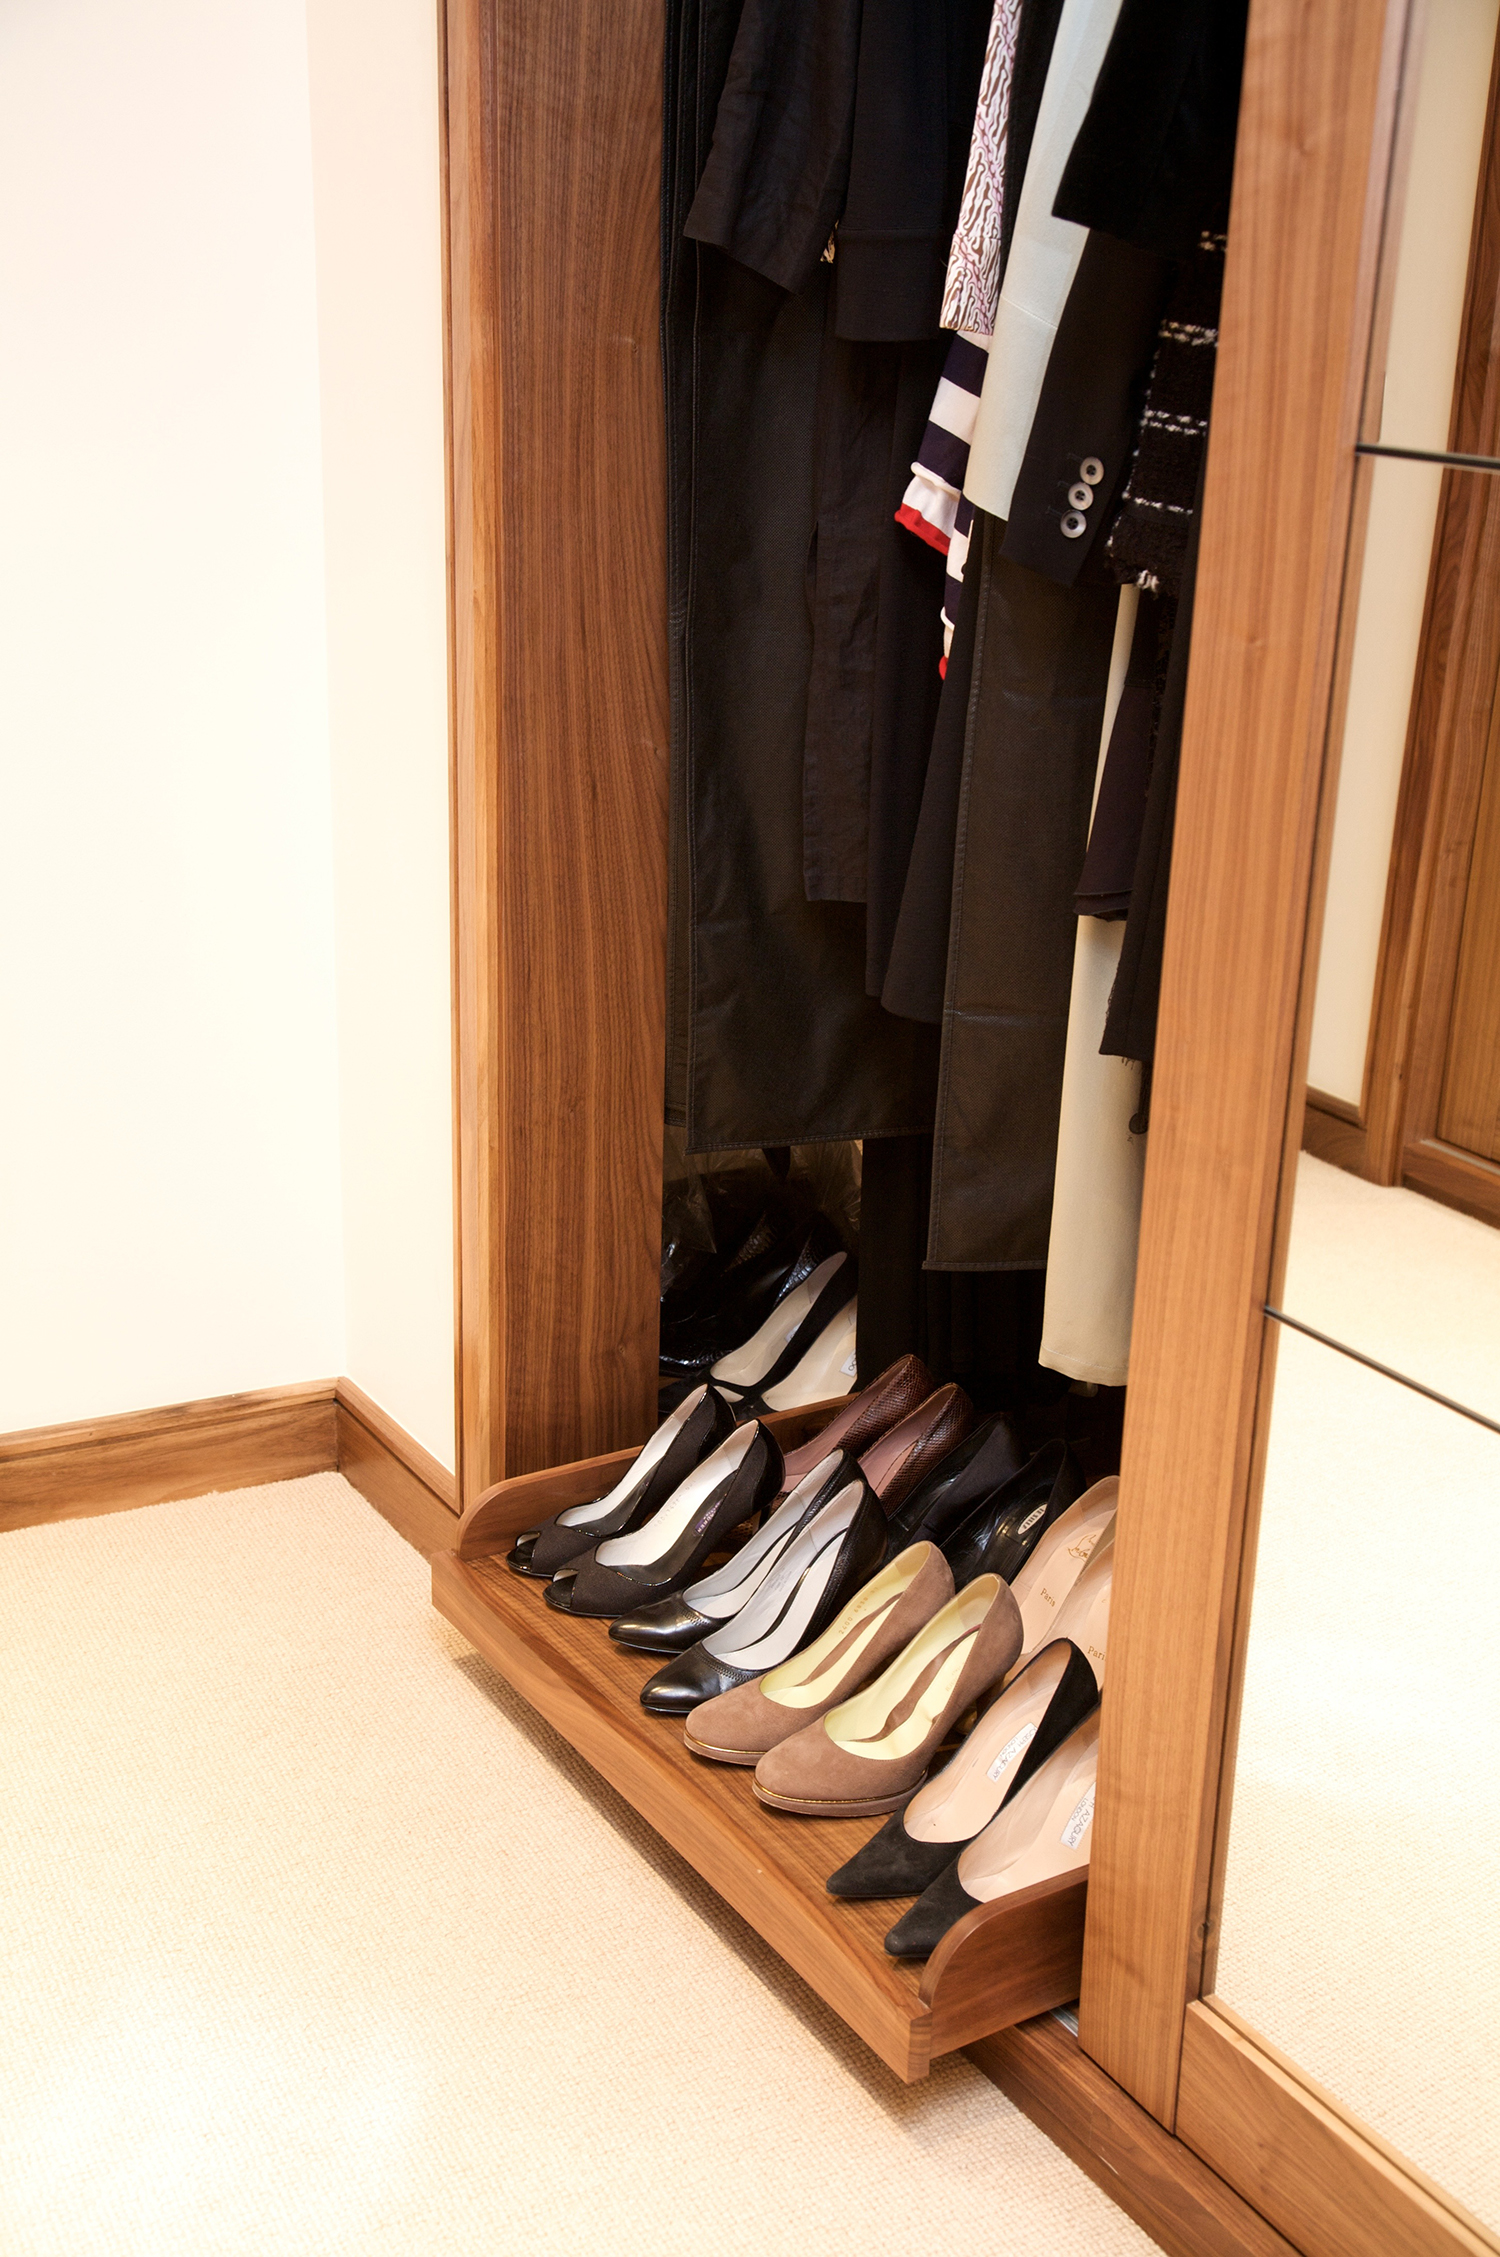 Bespoke Wardrobes - Bespoke Furniture Hampshire, UK